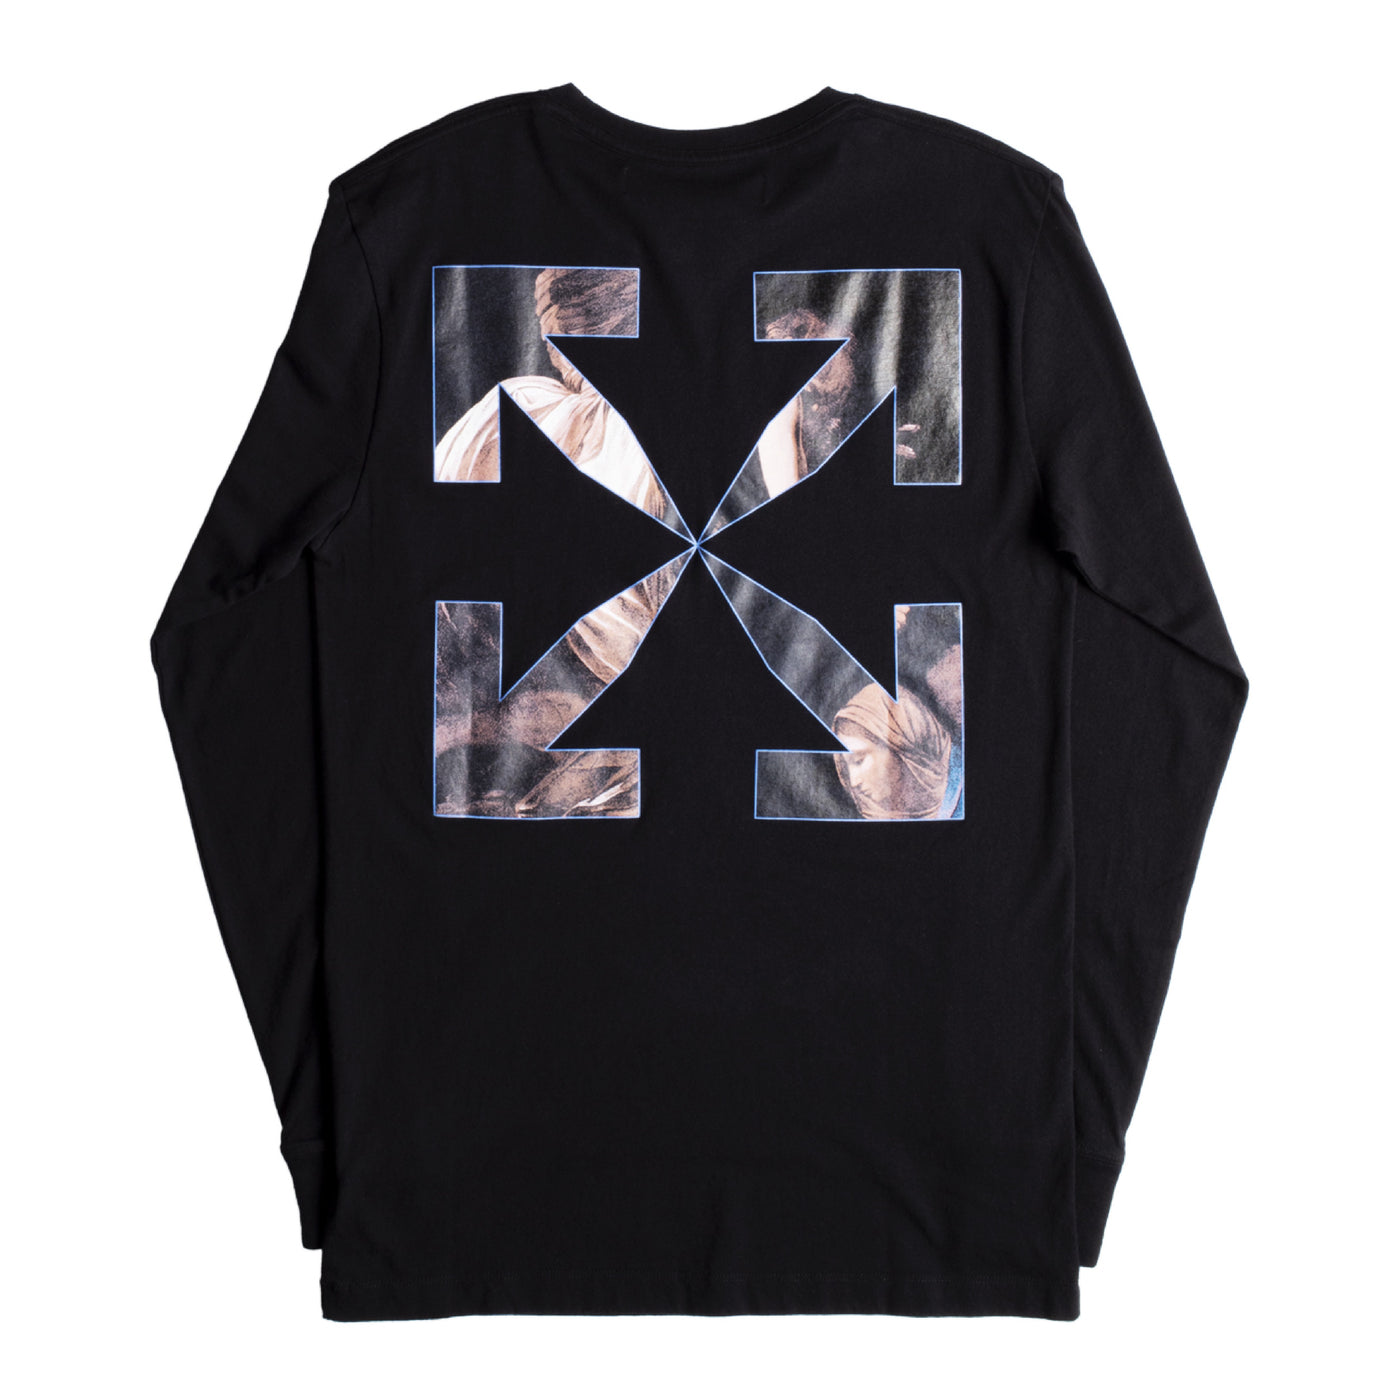 Load image into Gallery viewer, OFF-WHITE CARAVAGGIO ANGEL TEE BLACK